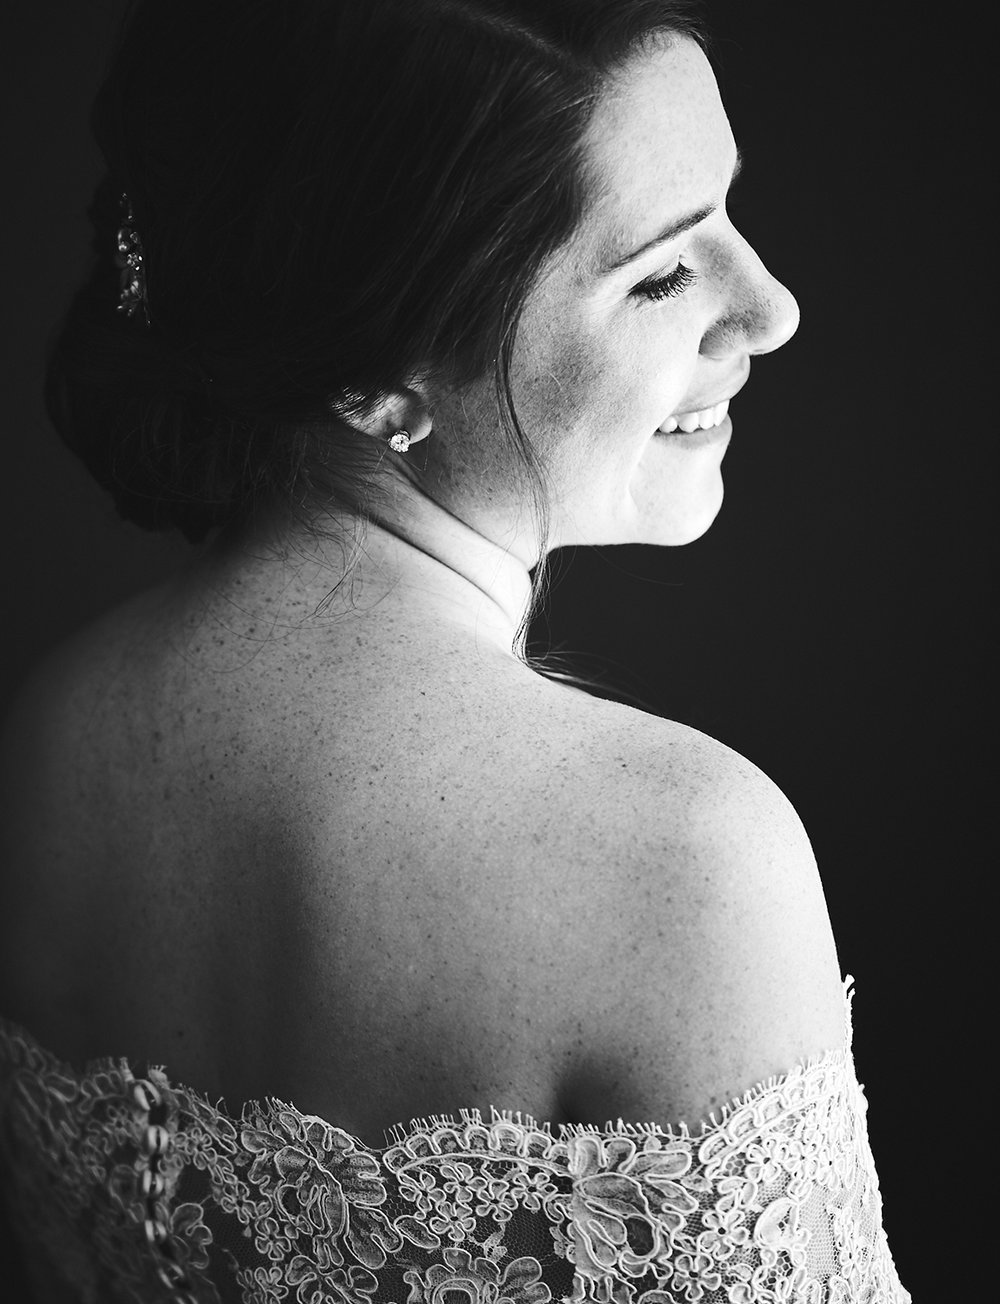 180324_StonehouseatStirlingRidgeWeddingPhotography_NJWeddingPhotographer_By_BriJohnsonWeddings_0036.jpg